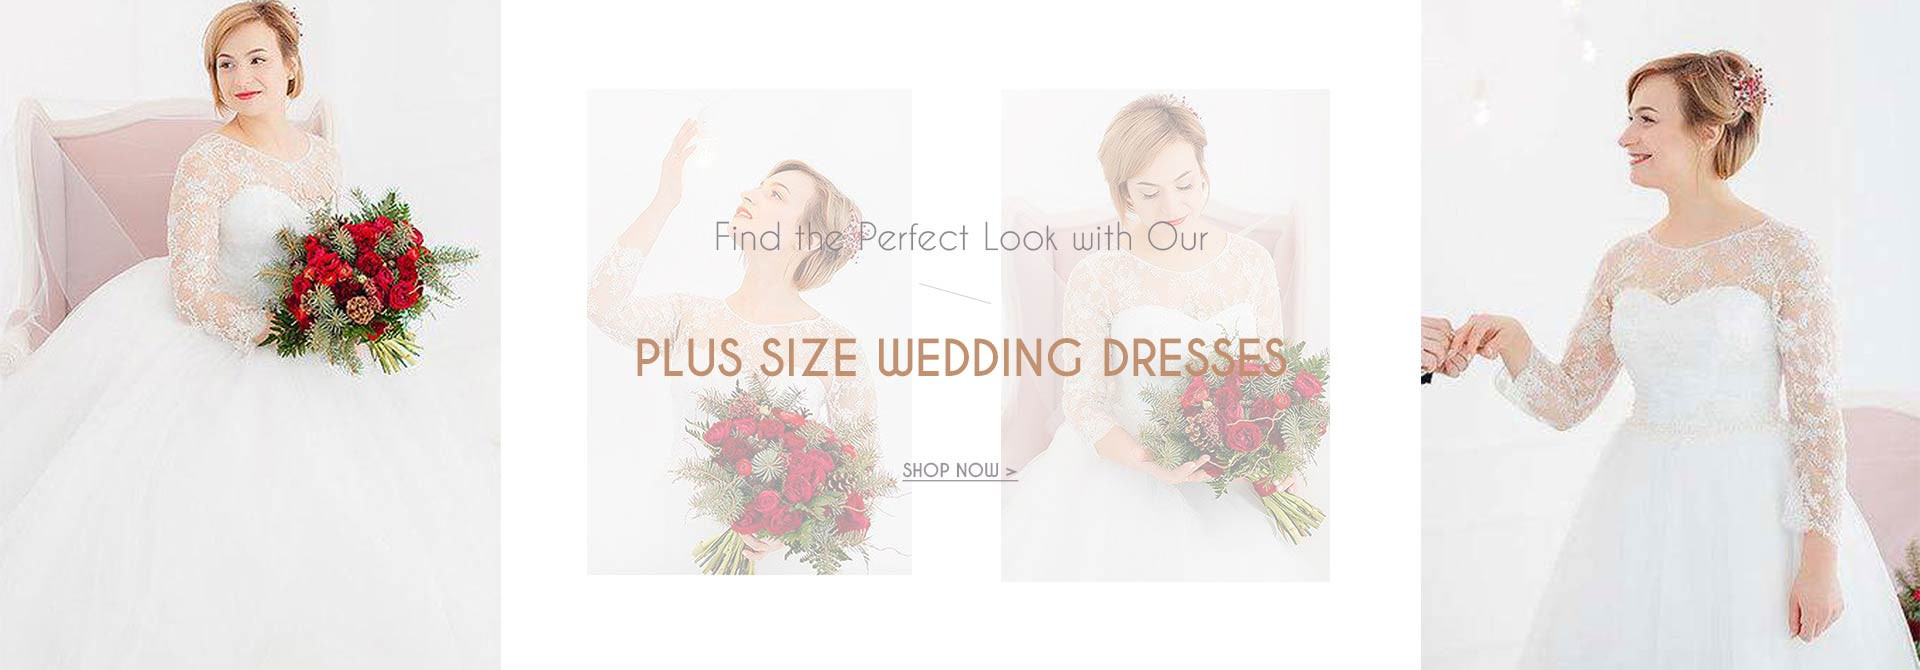 Find the perfect look with our plus size wedding dresses